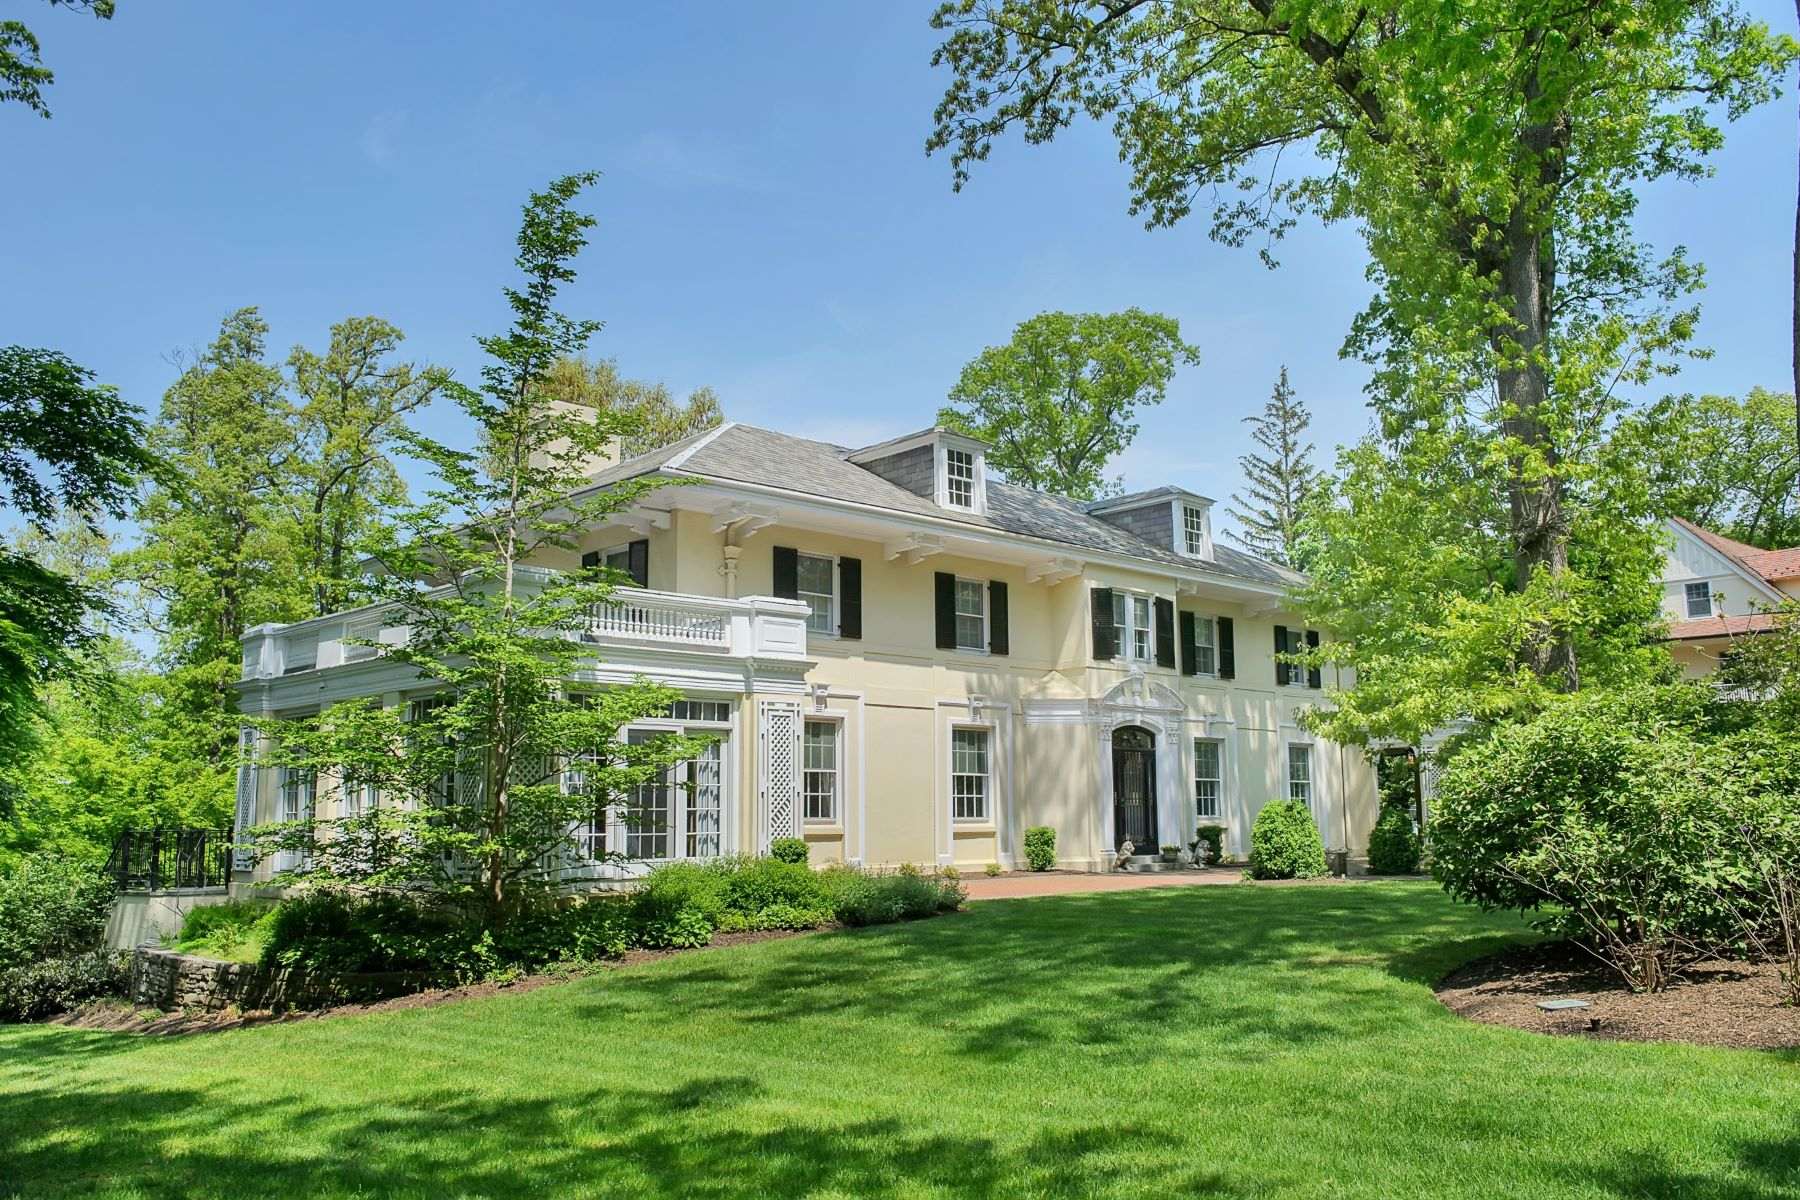 Single Family Home for Sale at Stylish Manor House 81 Oak Ridge Avenue, Summit, New Jersey 07901 United States